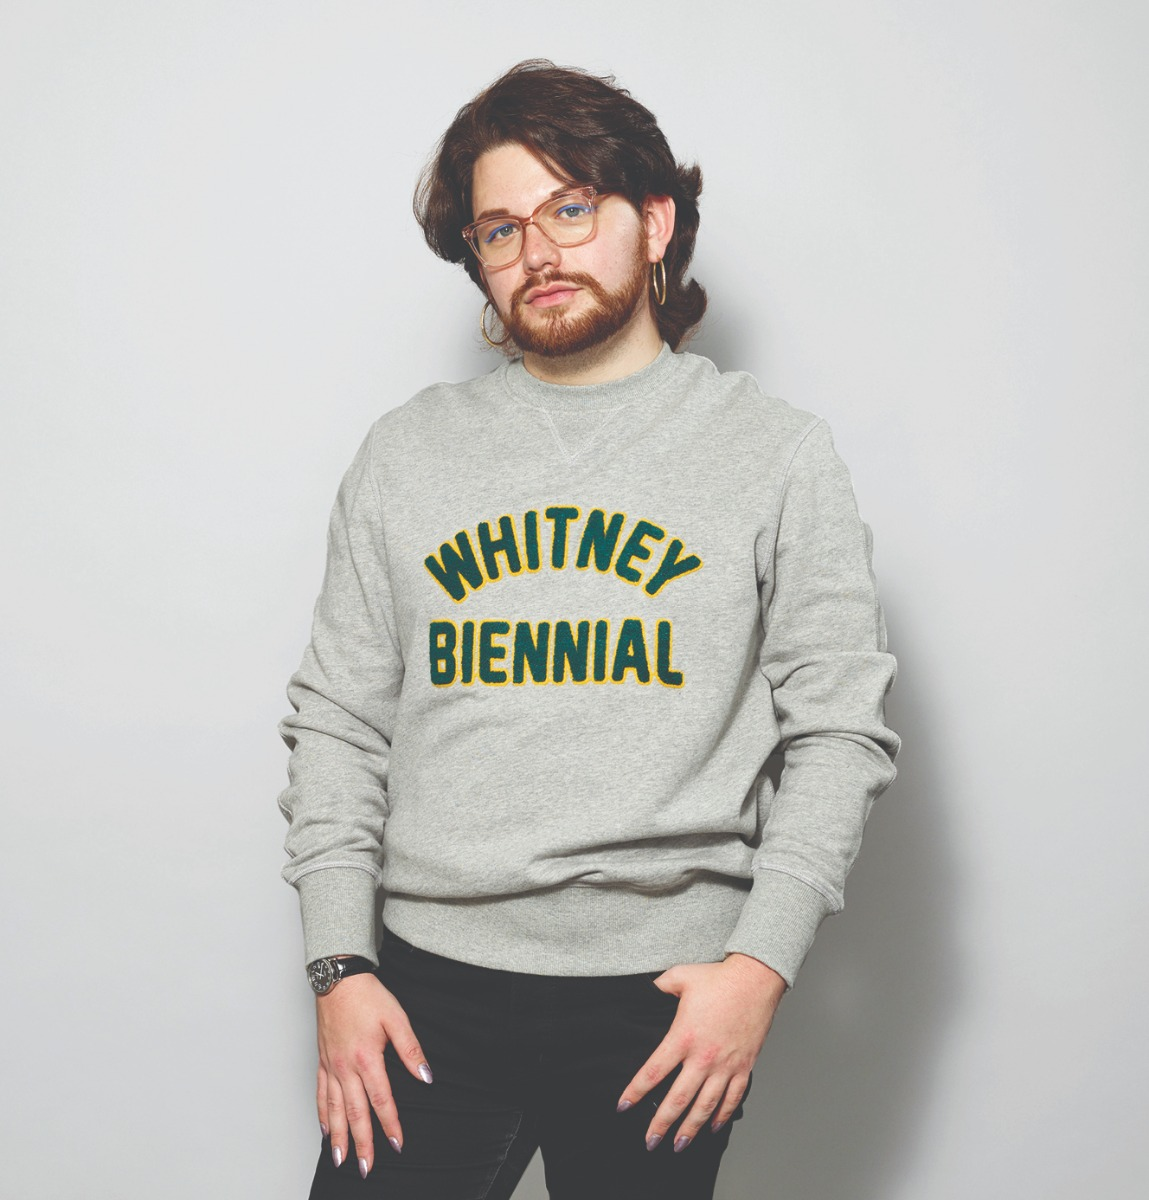 Whitney Biennial sweatshirt worn by model